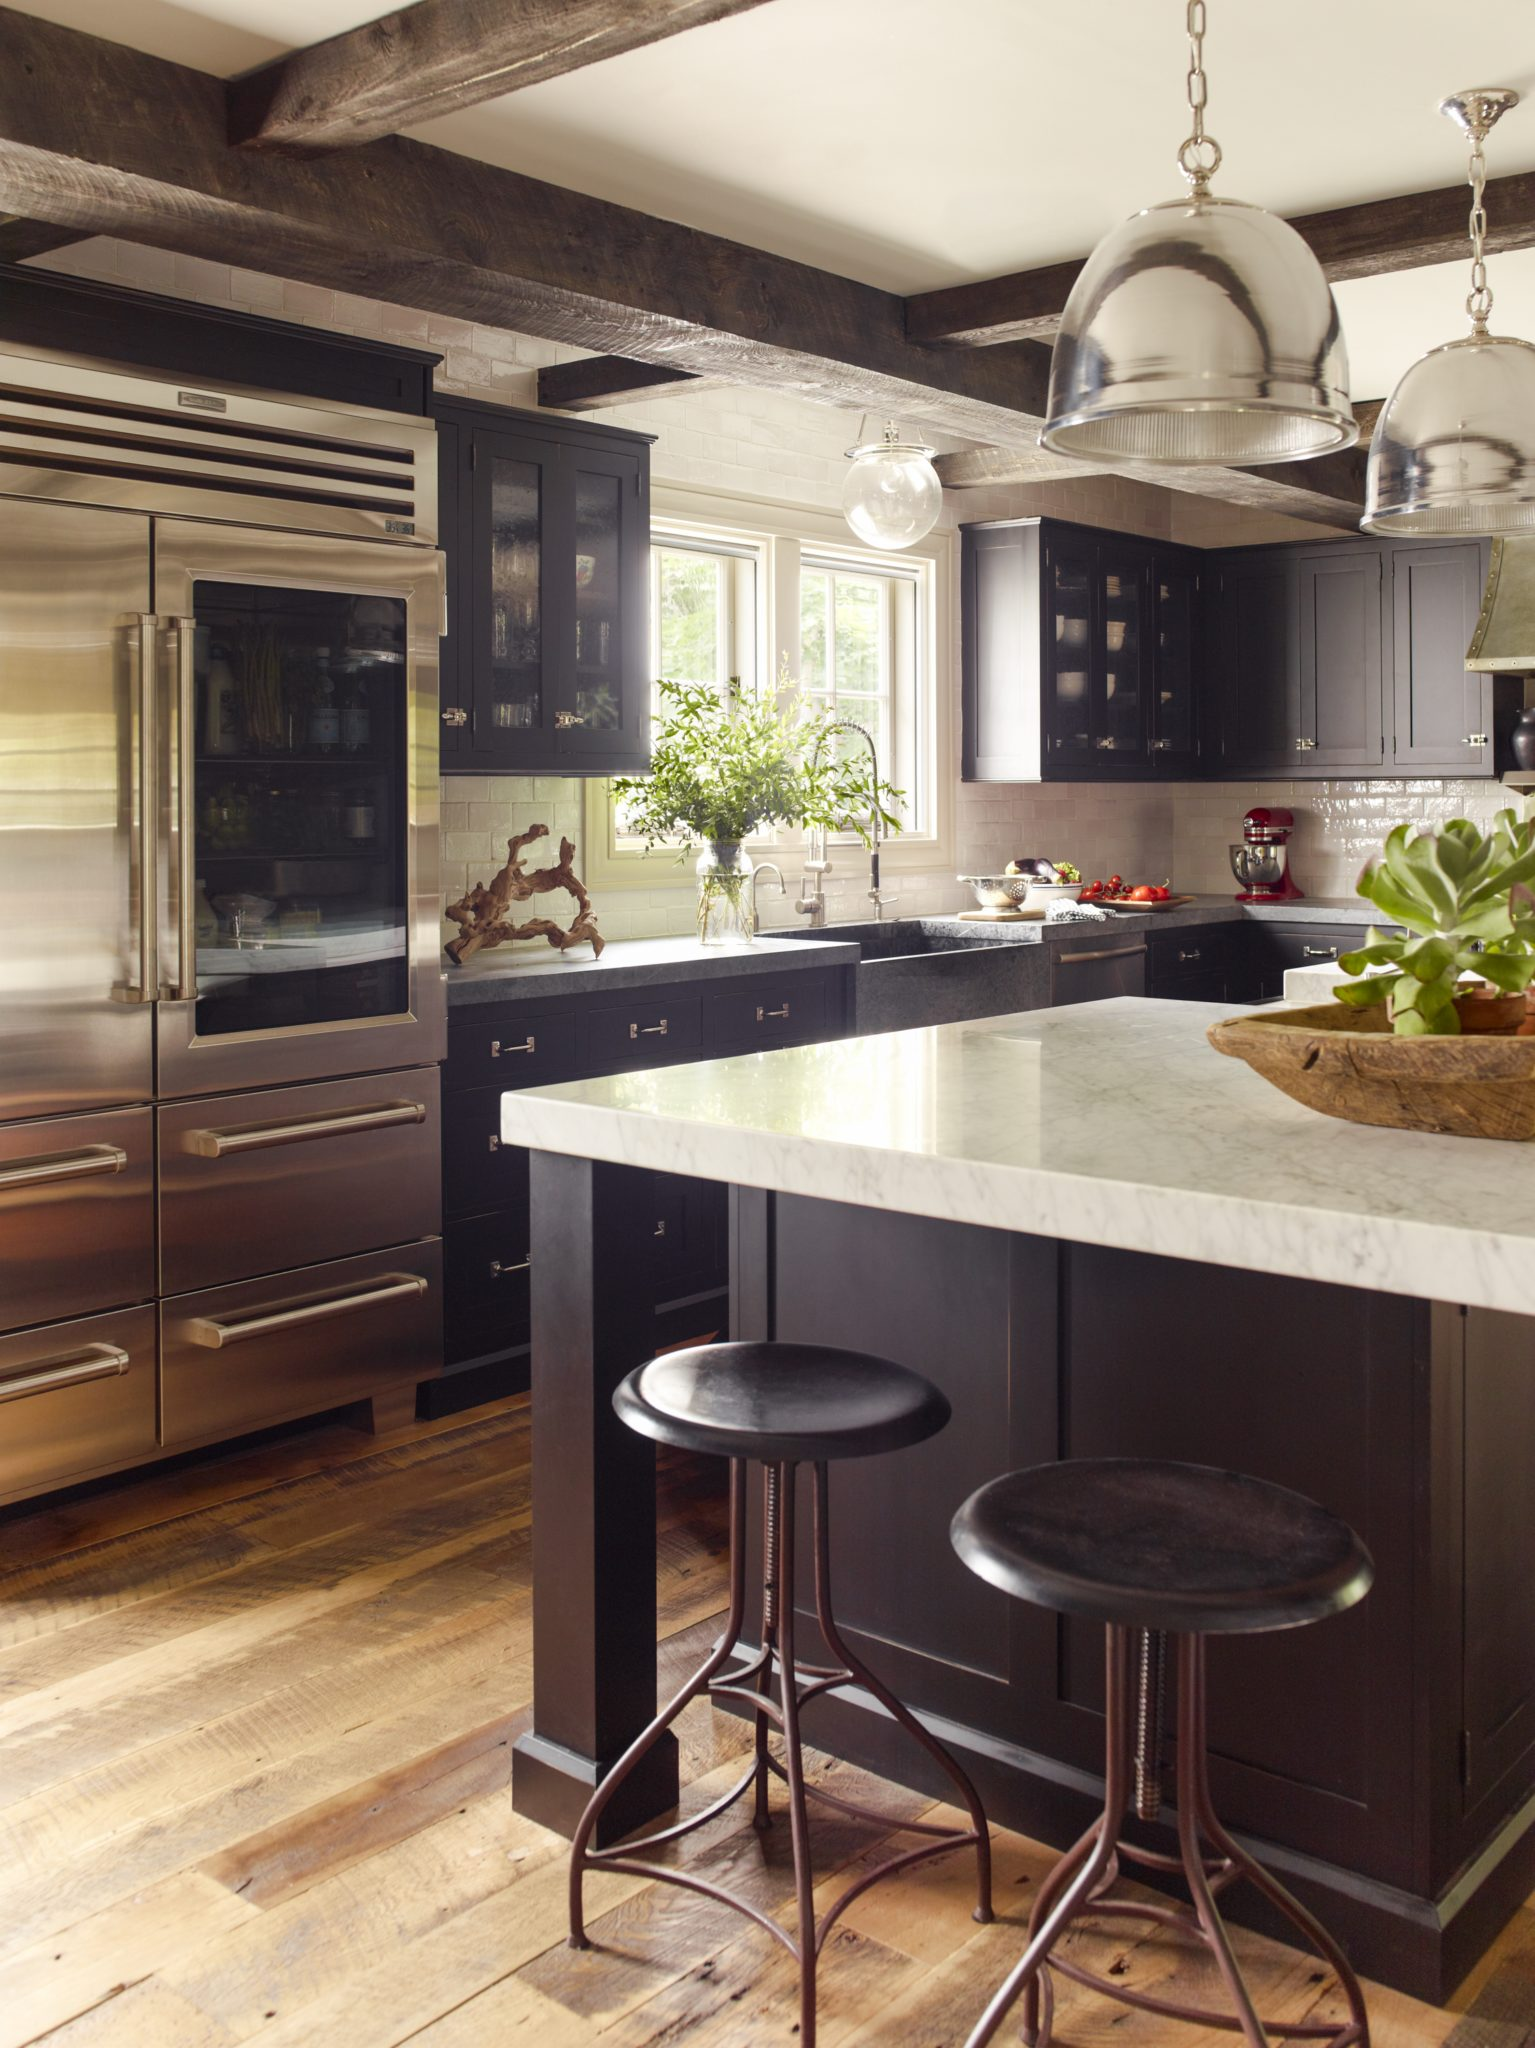 Plateau Circle kitchen by Dunn and Tighe Interiors